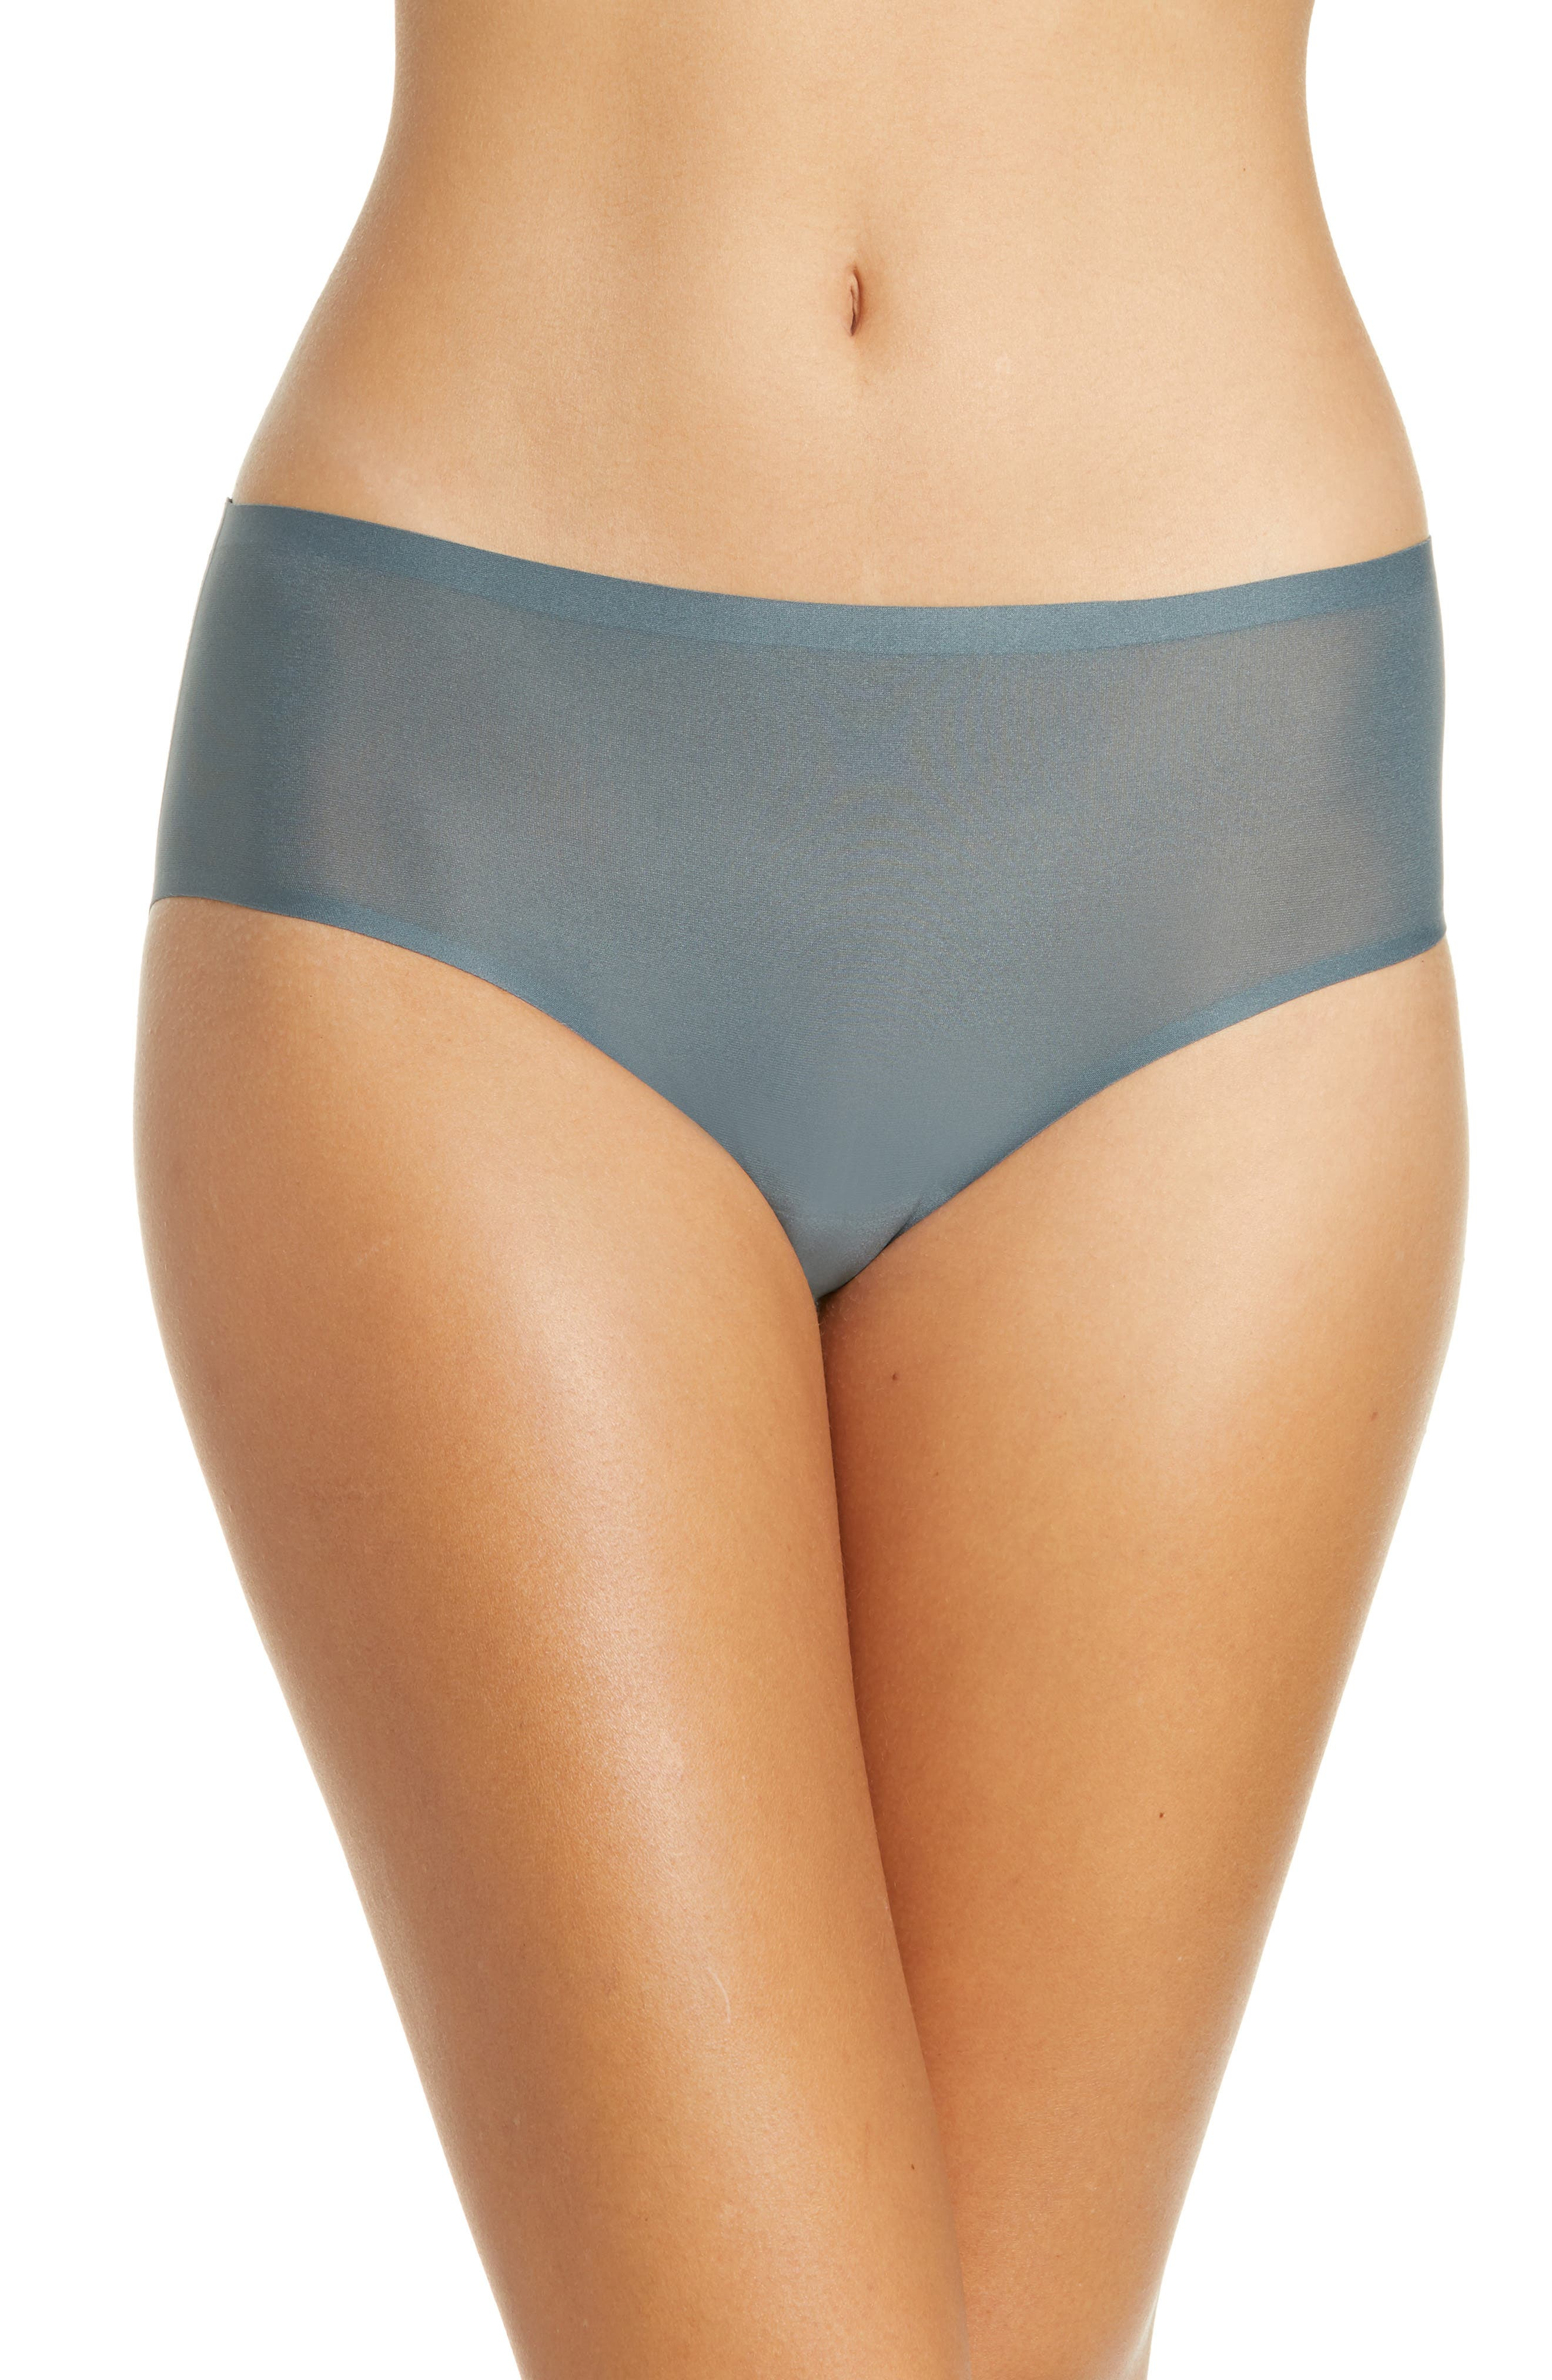 Get a smooth, line-free look without sacrificing comfort in these stretchy hipsters crafted with bonded sides and seamless edges that disappear beneath clothes. Style Name: Chantelle Lingerie Soft Stretch Seamless Hipster Panties (Buy More & Save). Style Number: 5211587. Available in stores.